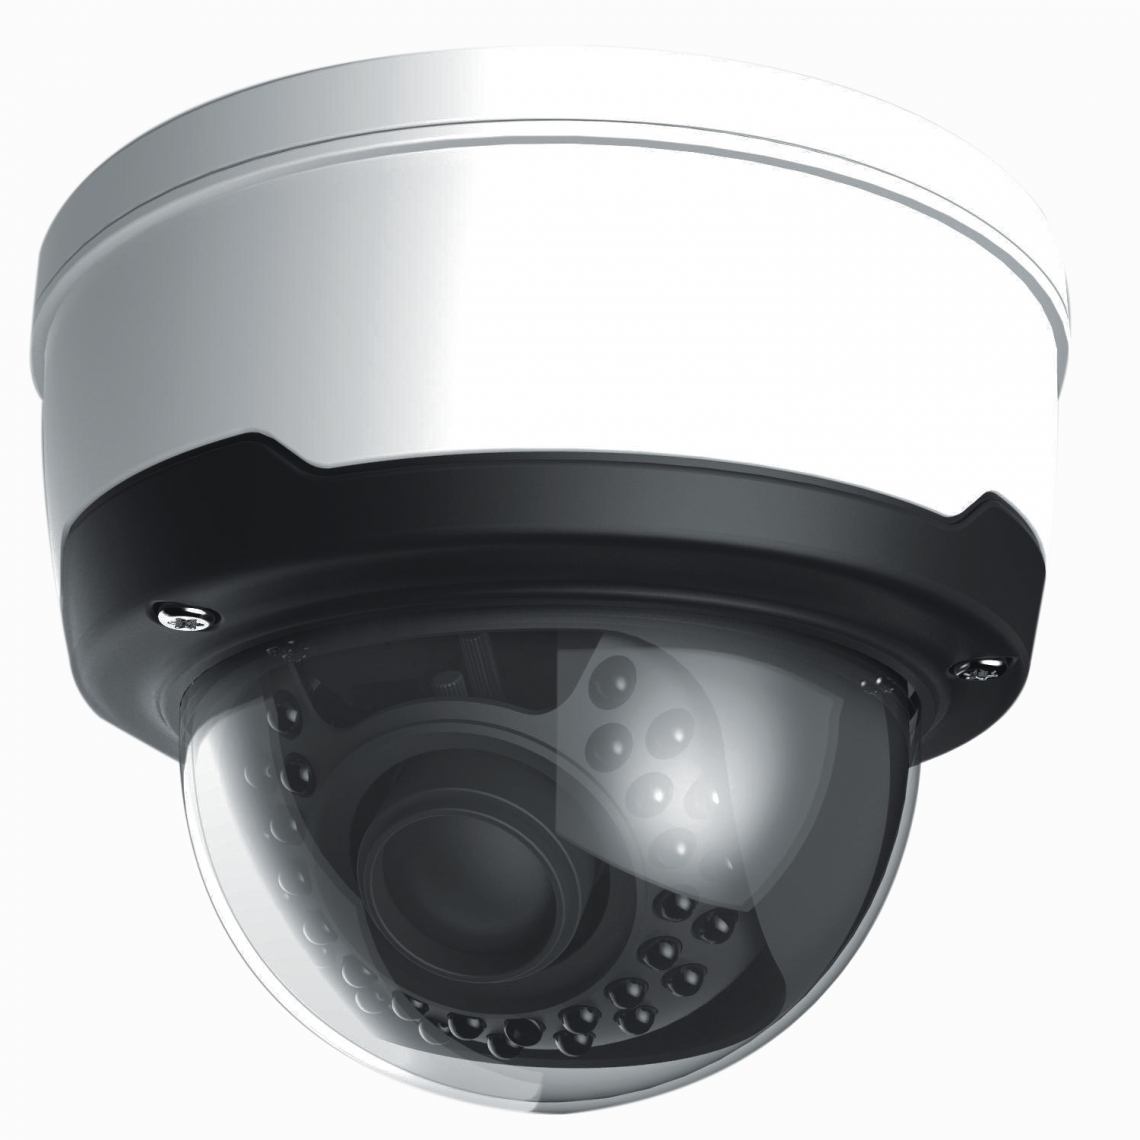 TELECAMERA DOME IP H.265 4MP VARIFOCAL - TVT75NV